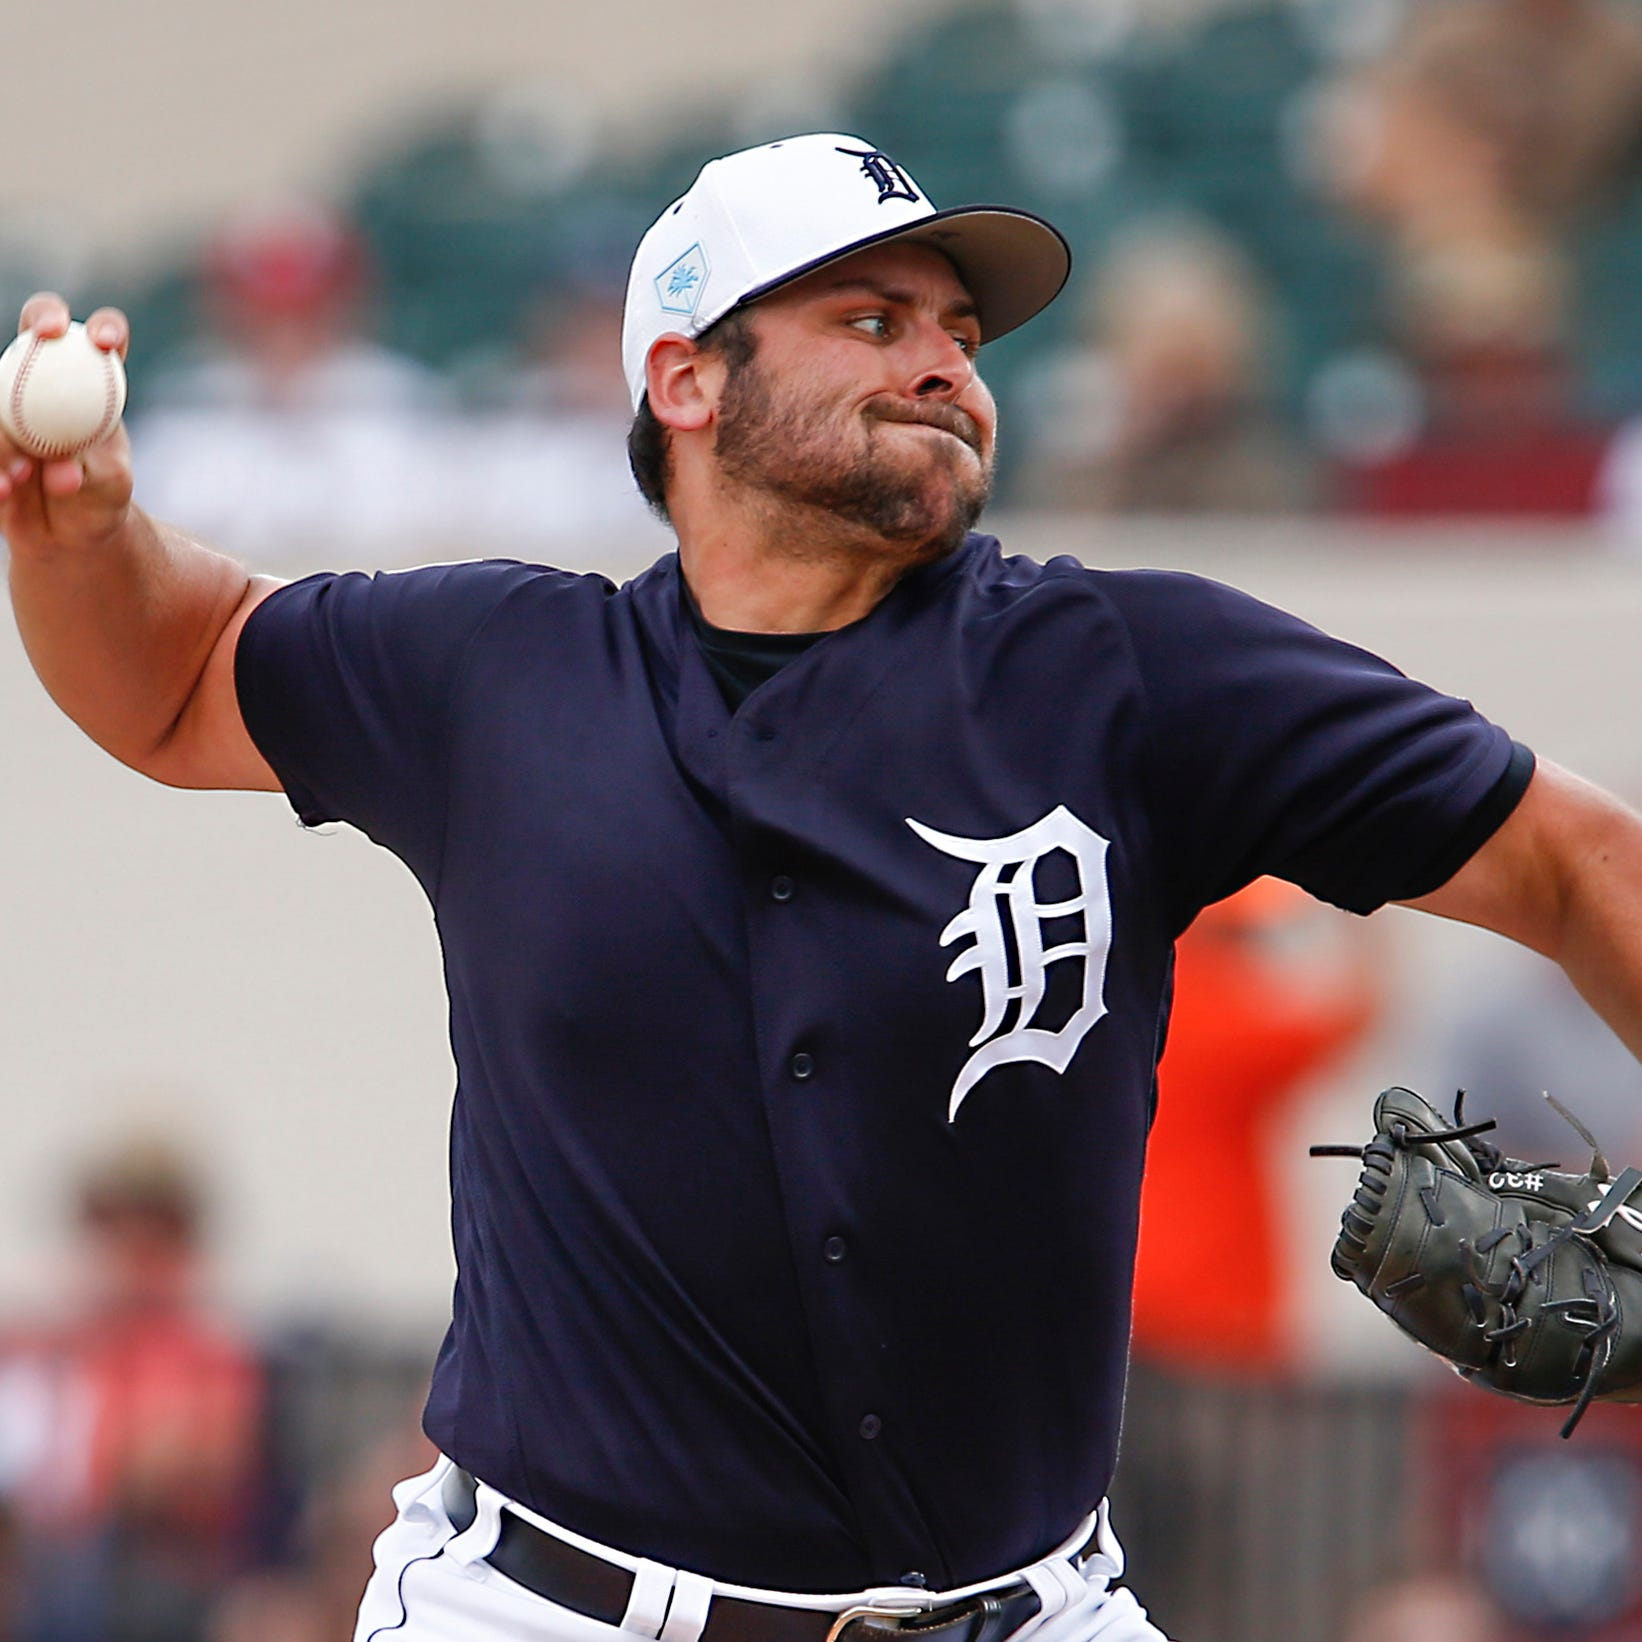 Detroit Tigers' Michael Fulmer accepts fate, will have Tommy John surgery